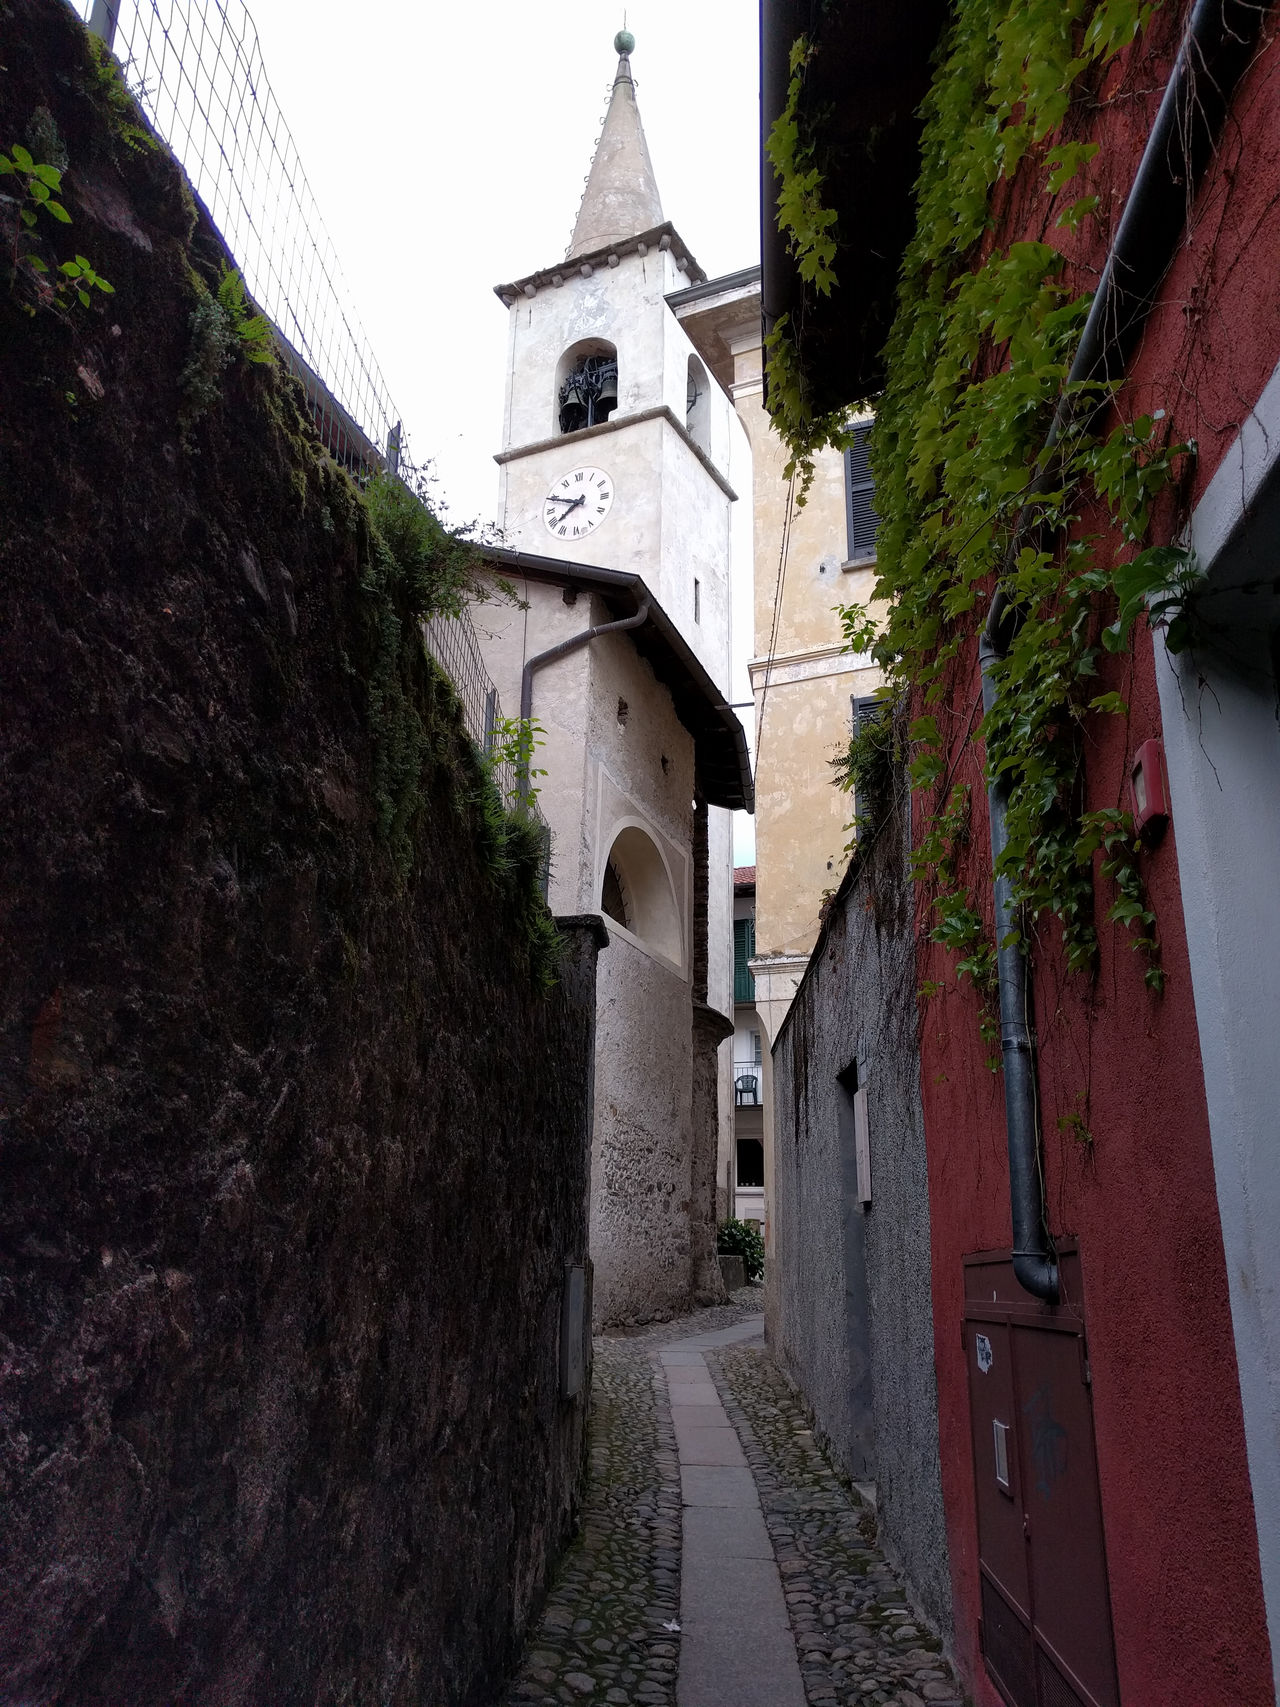 Alley Architecture Building Building Exterior Built Structure Church Day Diminishing Perspective Growth Narrow No People Outdoors Residential Building Residential Structure Sky The Way Forward Town Tree Vanishing Point Walkway